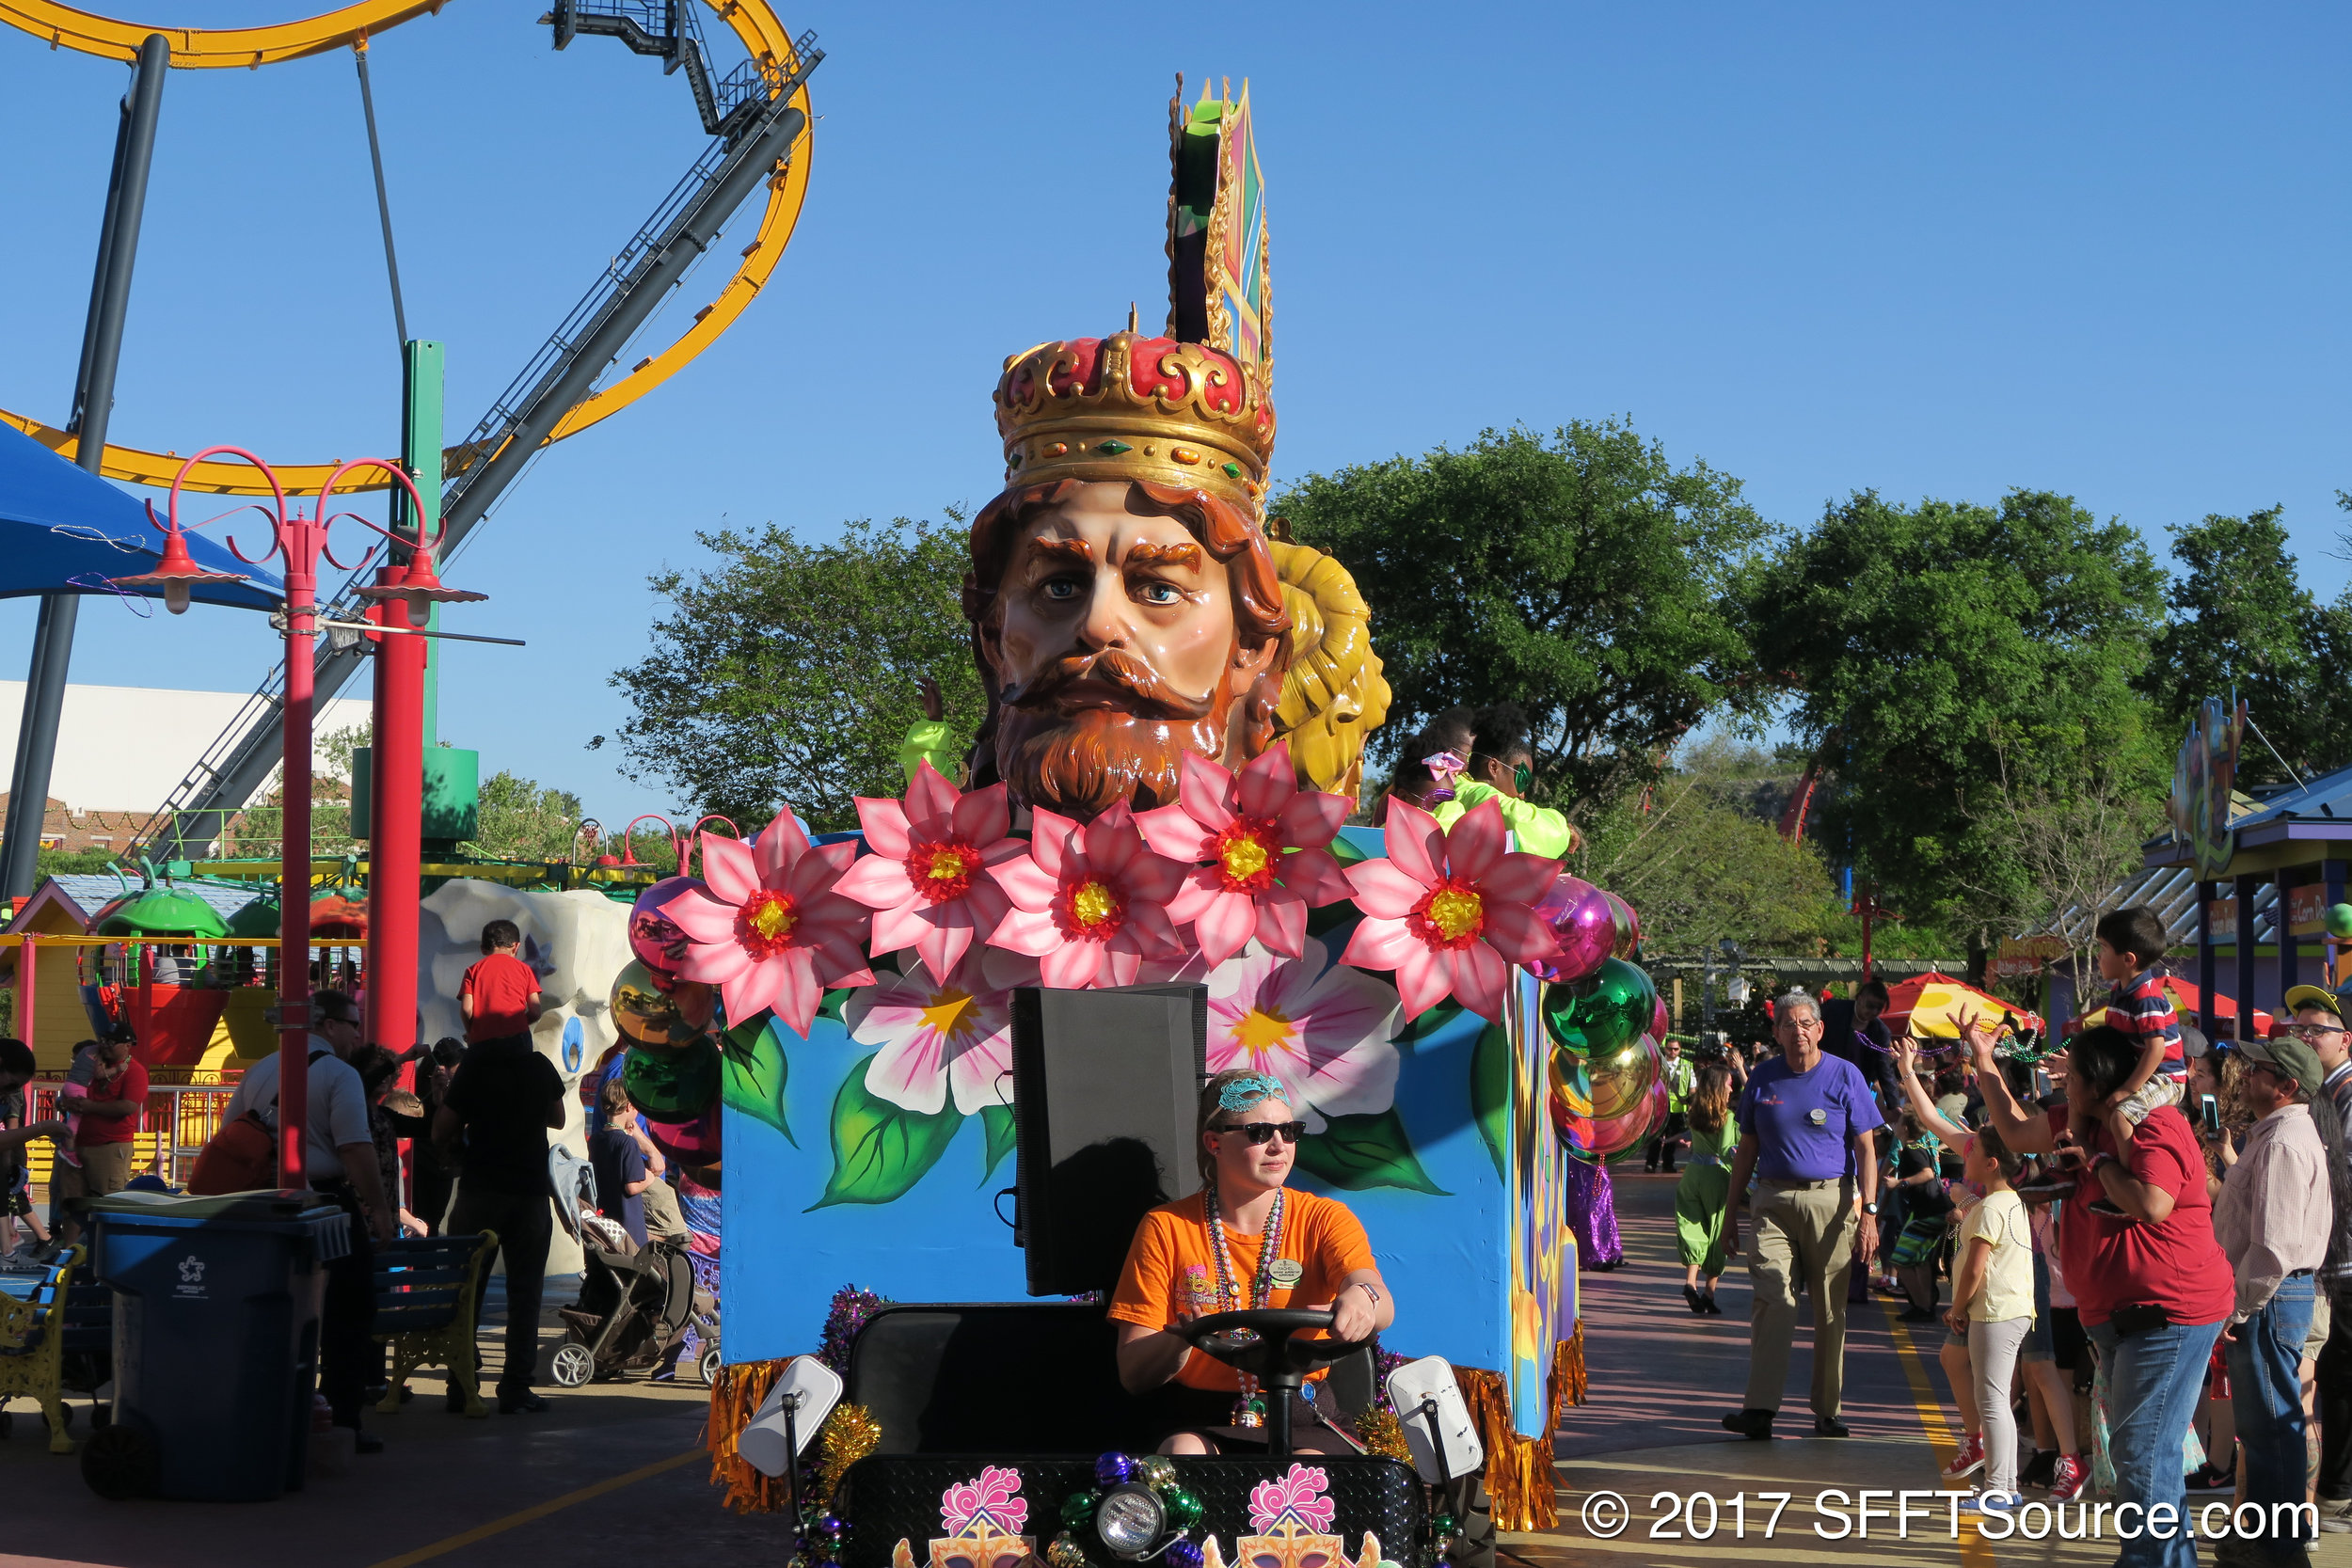 A look at the Mardi Gras Parade in 2017.